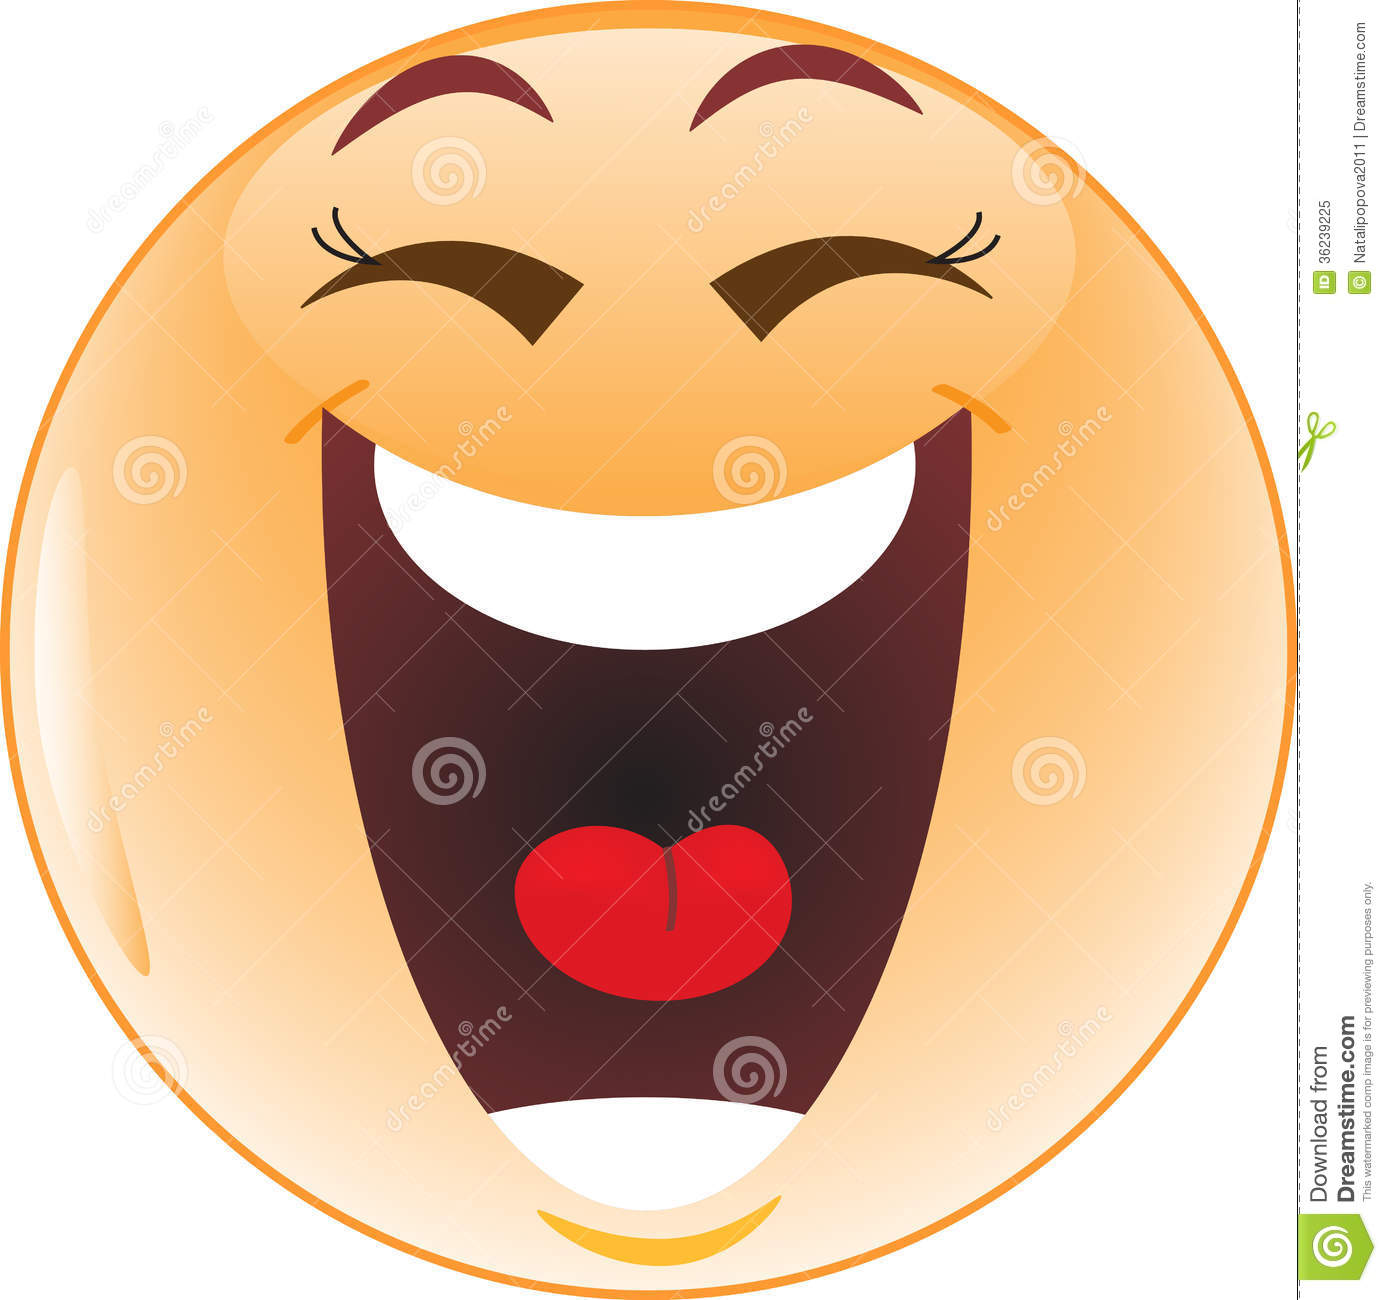 Laughing Smiley Royalty Free Stock Photo.